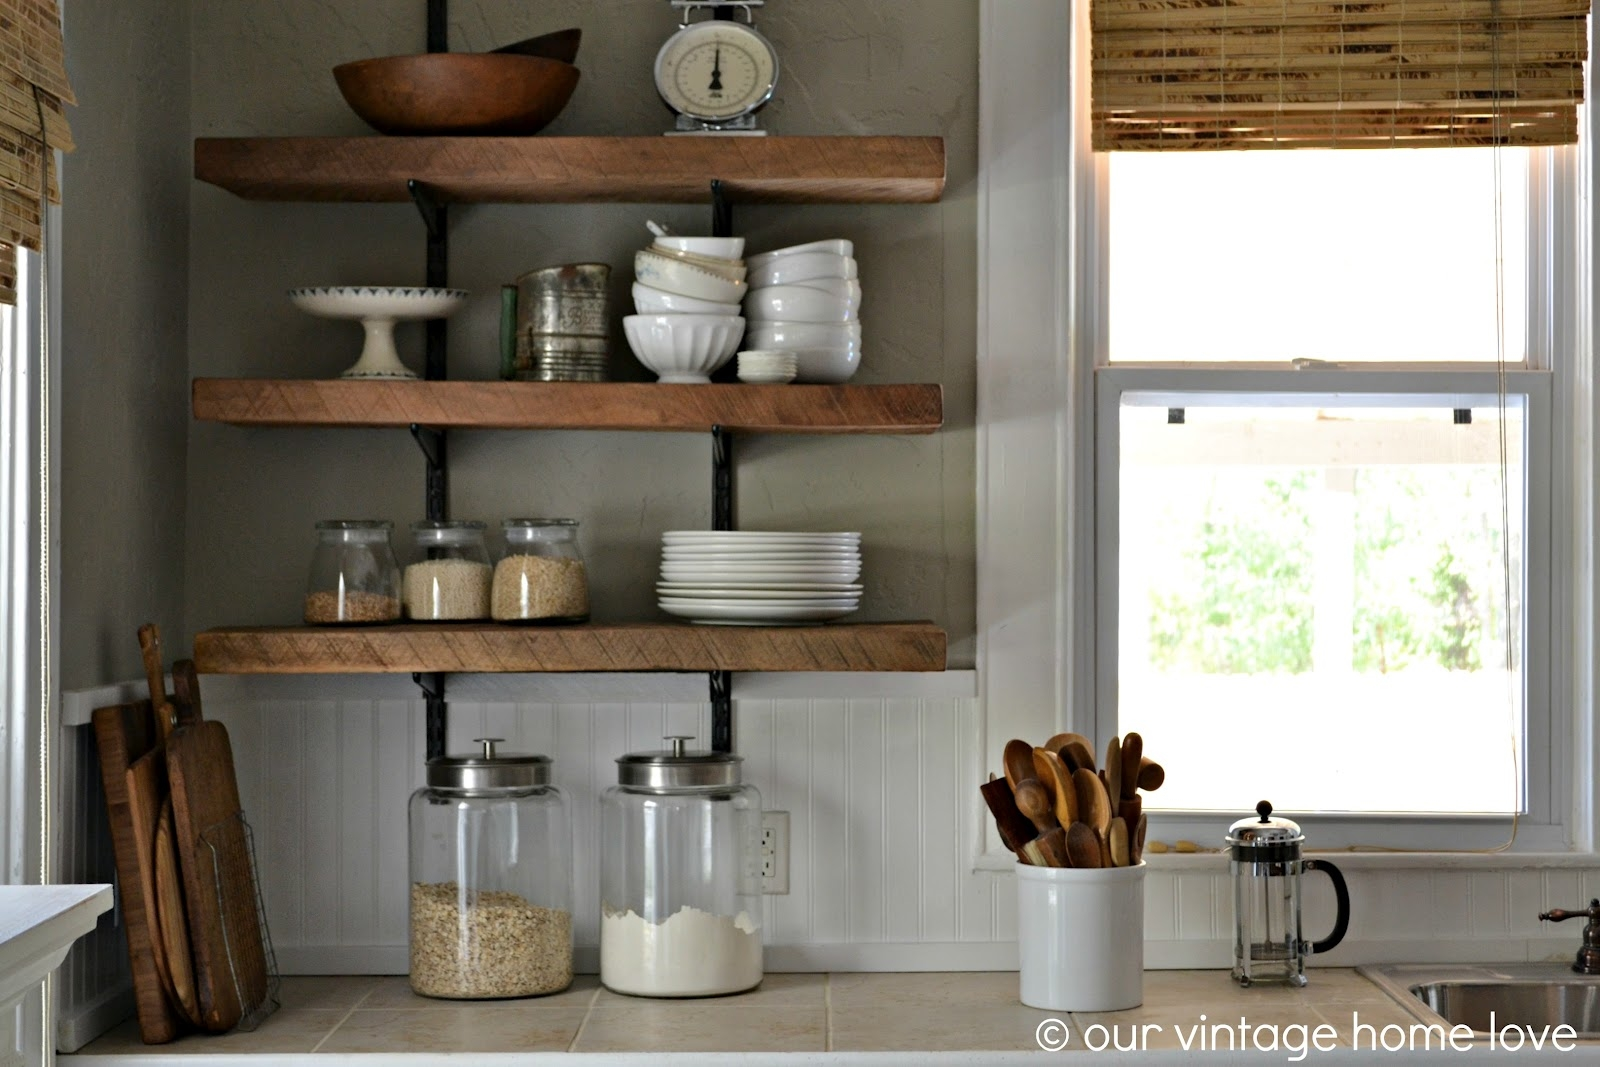 Our Vintage Home Love Reclaimed Wood Kitchen Shelving Reveal With Kitchen Shelves (Image 11 of 15)